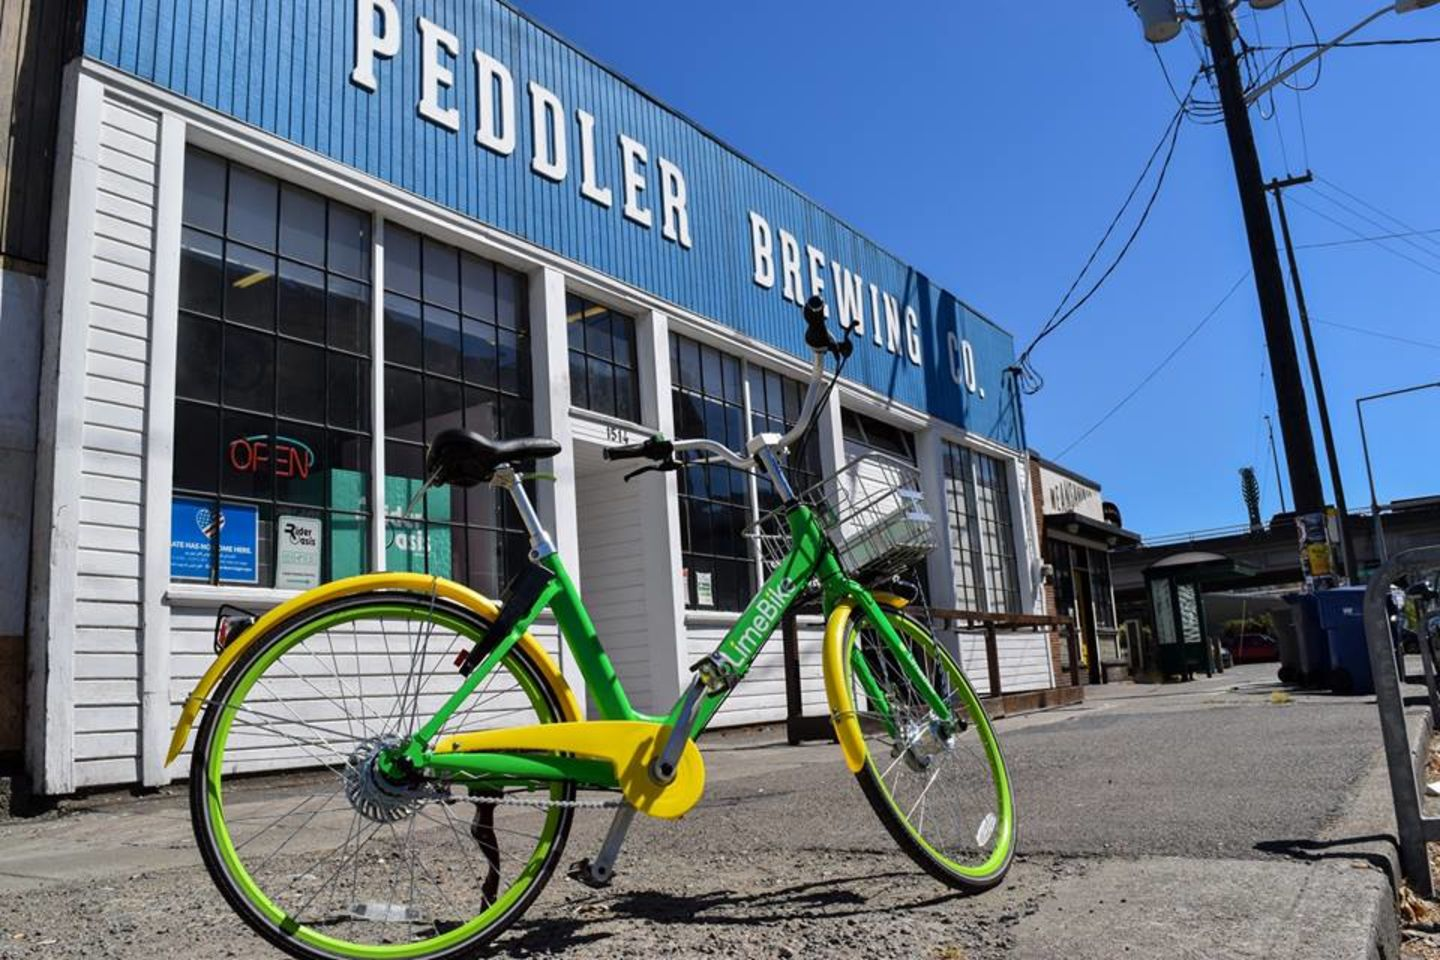 A photo of Peddler Brewing Company